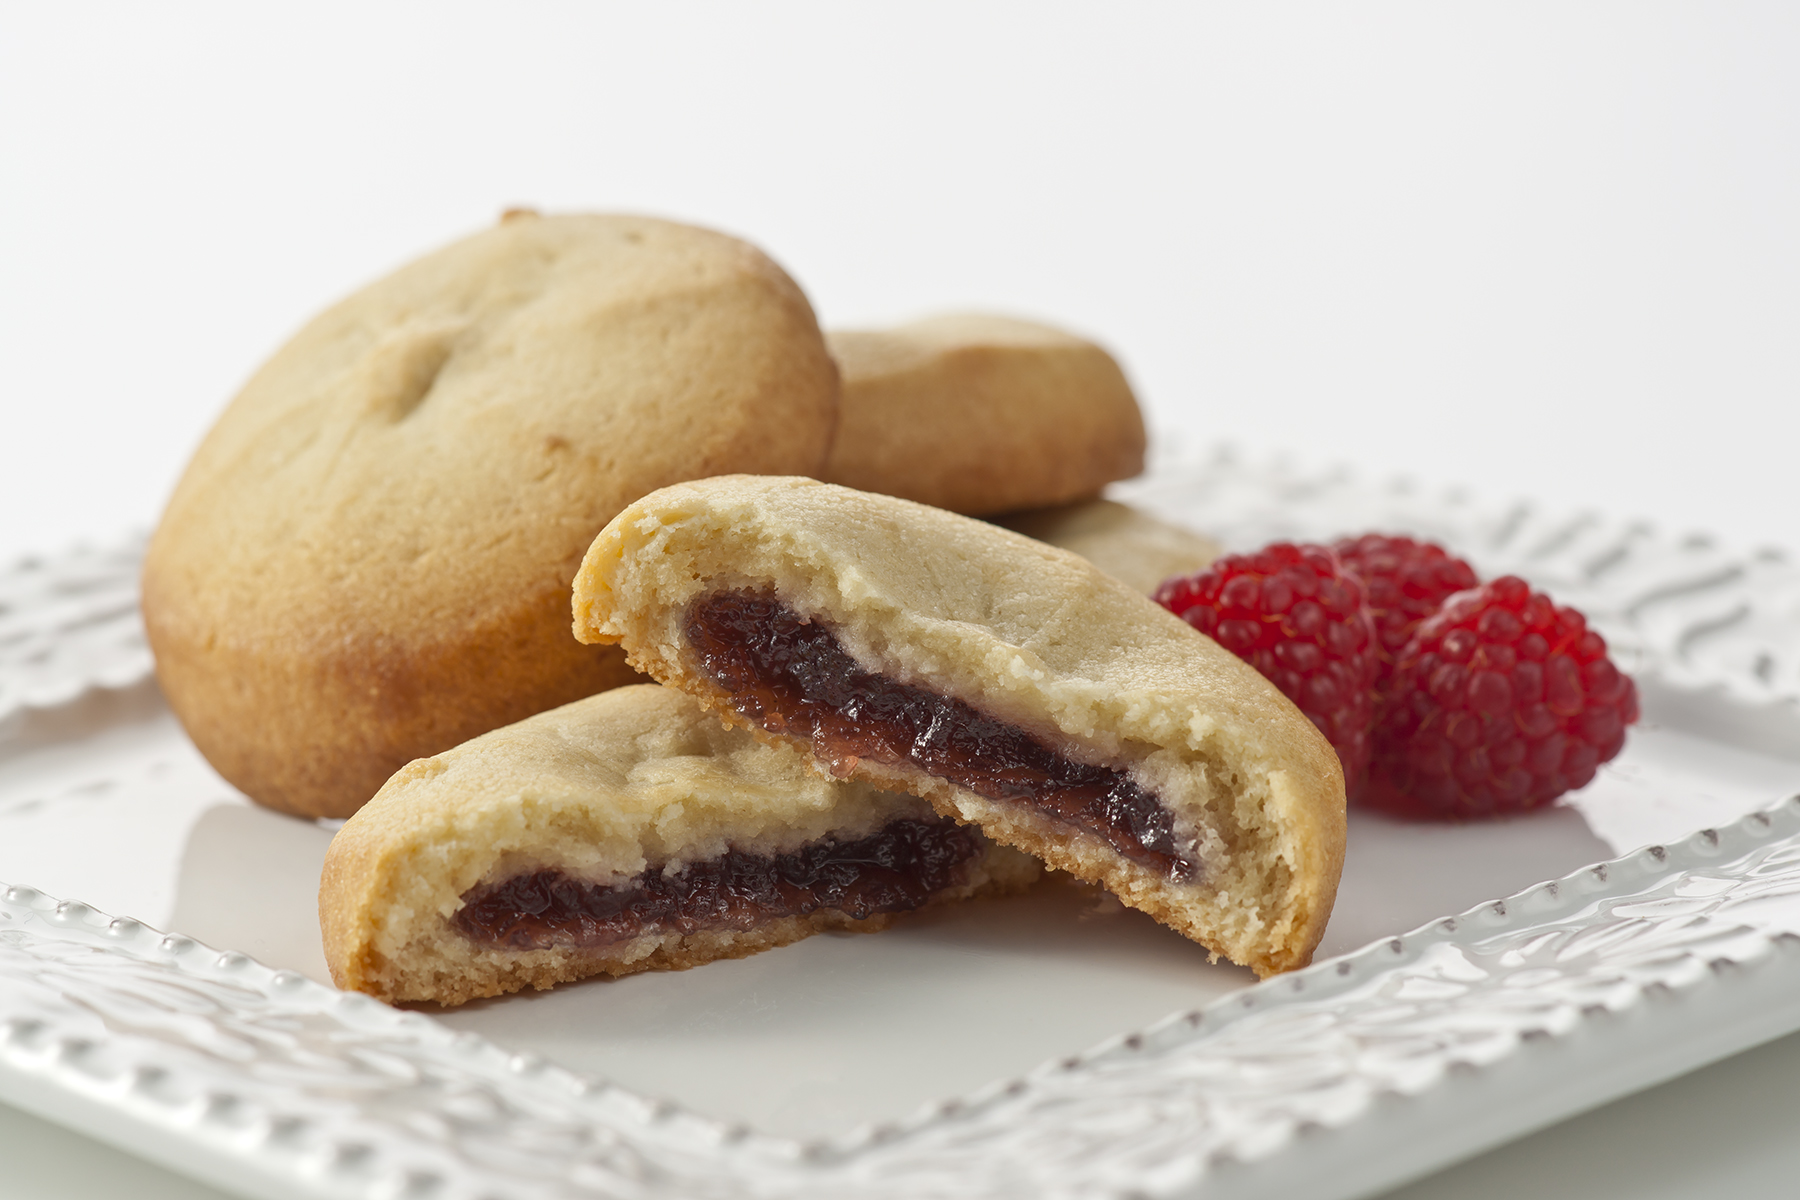 Raspberry Cream - One of our best sellers, this delicate and light cookie filled with All-Natural Raspberry filling is bursting with flavor.